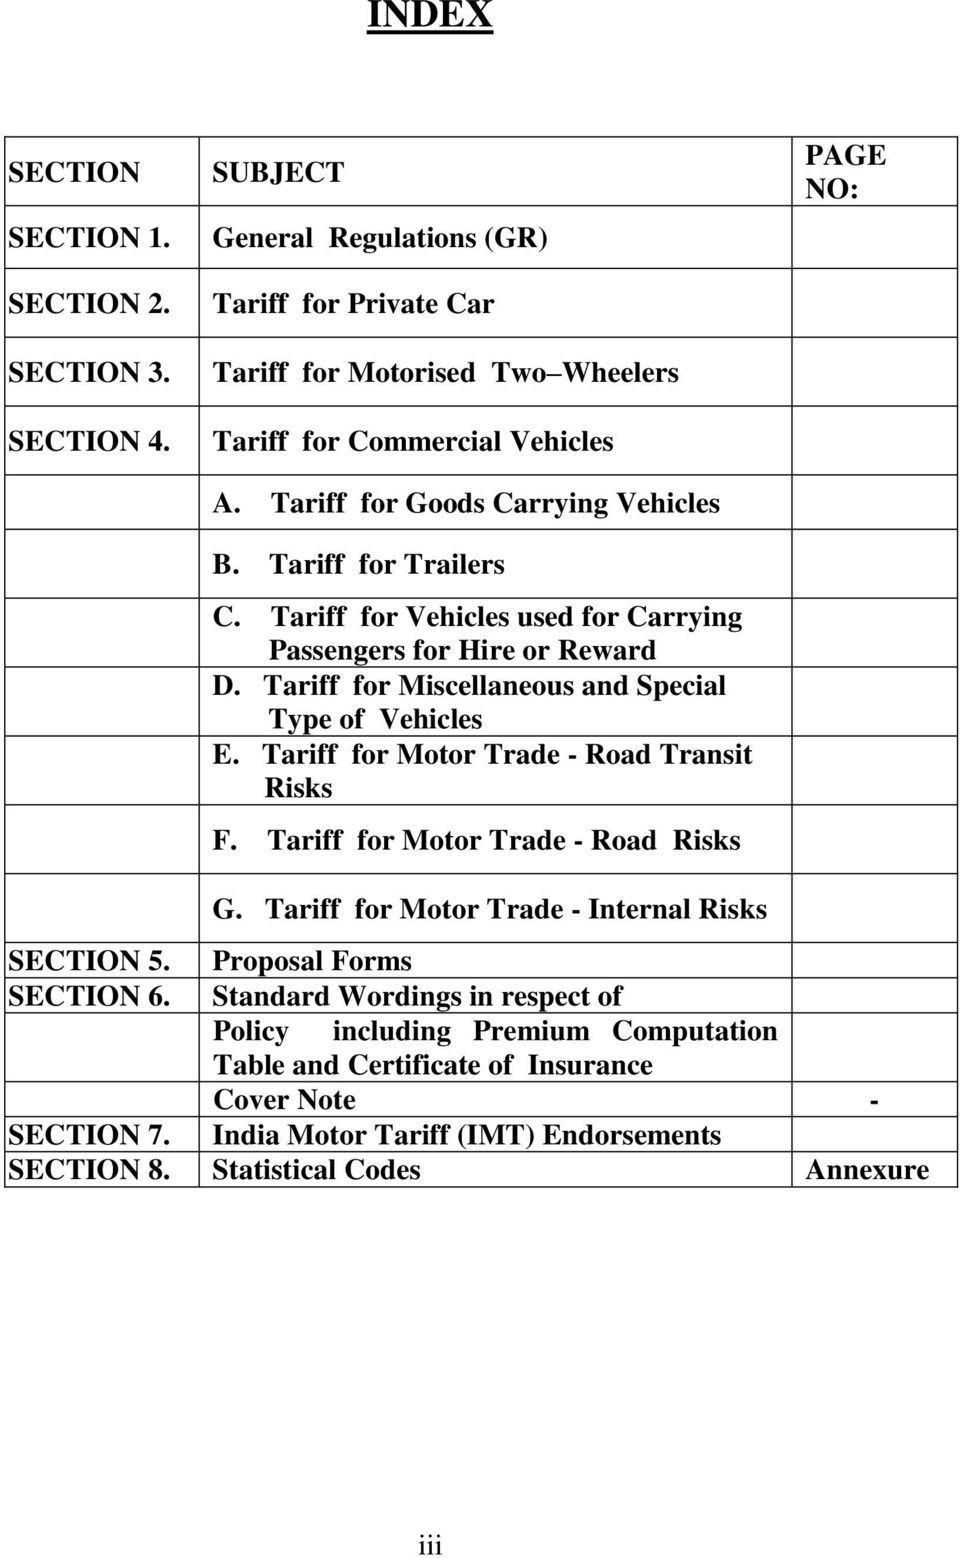 Tariff for Motor Trade - Road Transit Risks F. Tariff for Motor Trade - Road Risks PAGE NO: G. Tariff for Motor Trade - Internal Risks SECTION 5. Proposal Forms SECTION 6.